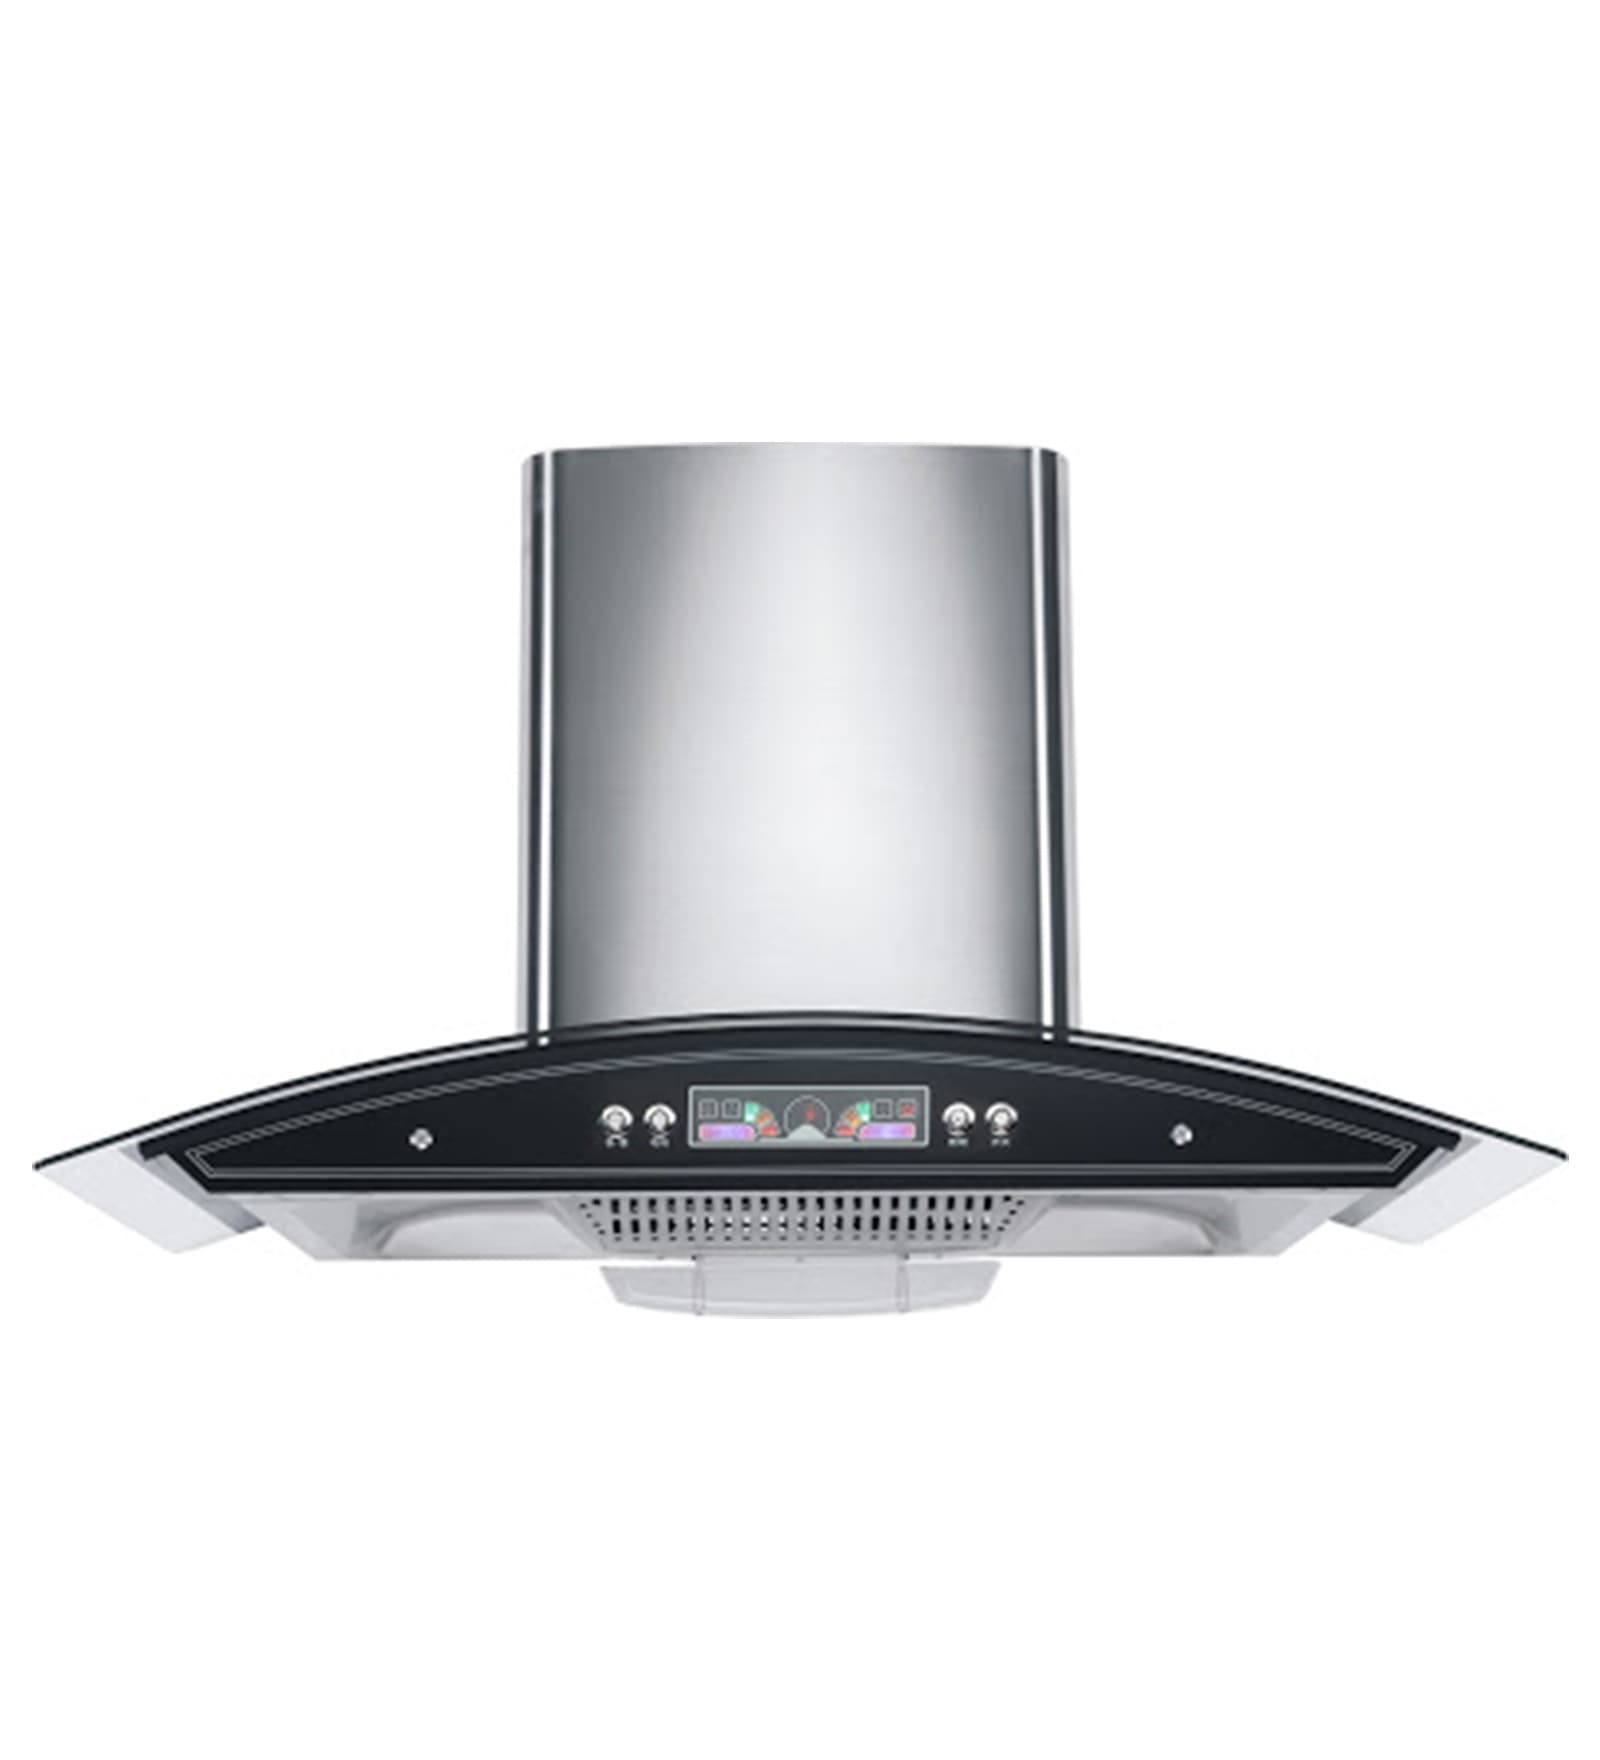 Latest Fabiano Kitchen Chimney Price List | Compare & Buy Fabiano ...